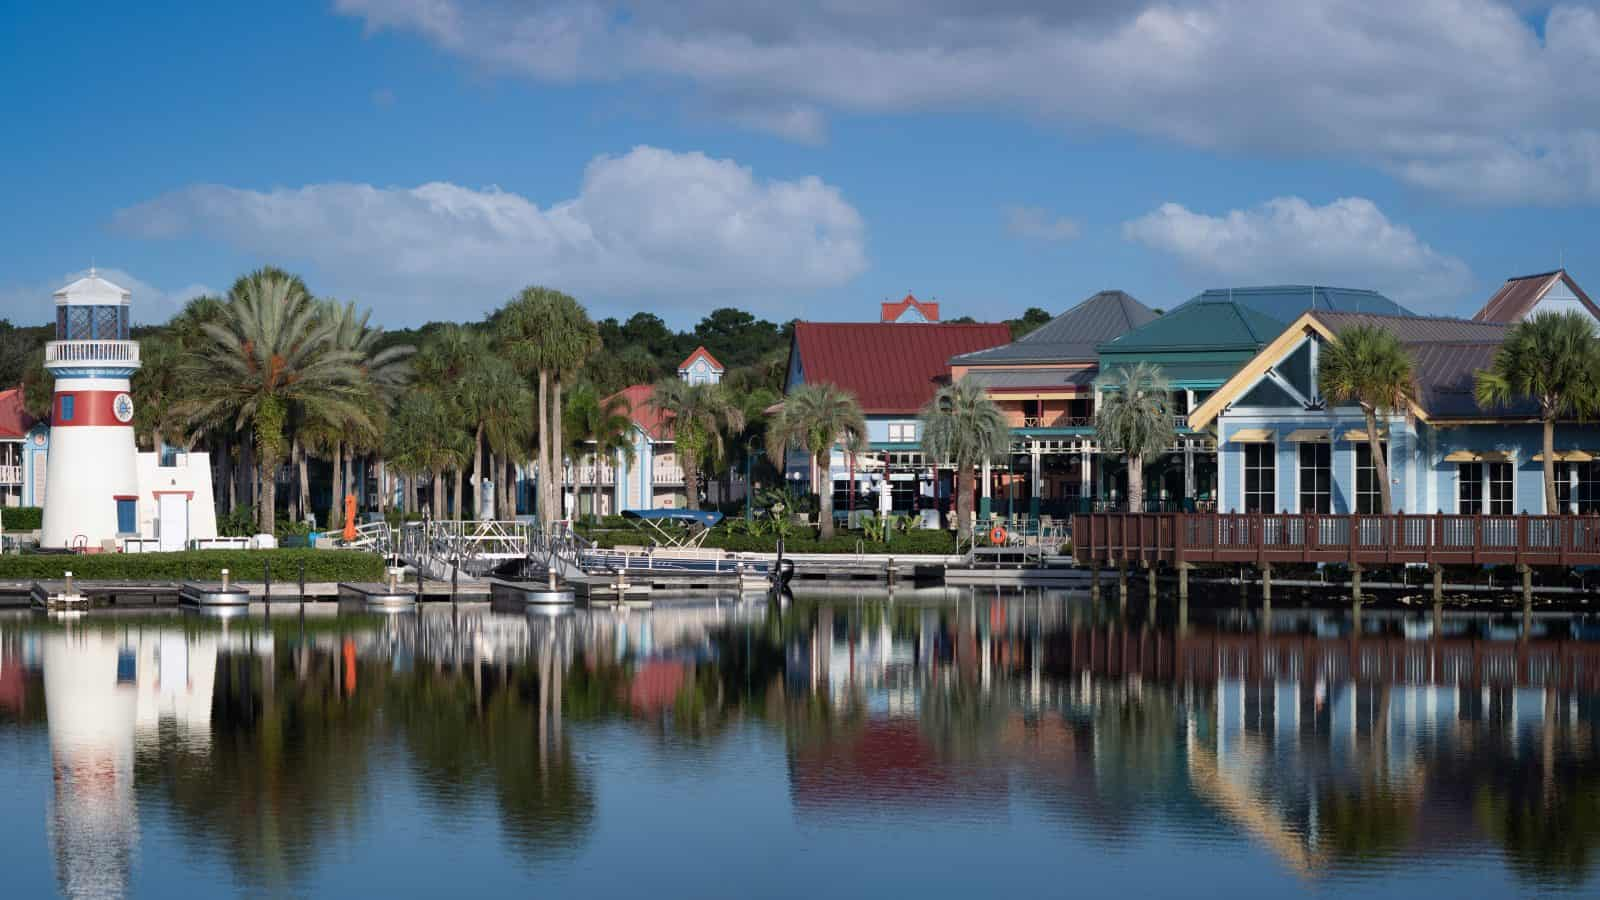 The quaint skyline of a small town in Florida is reflected in the water.